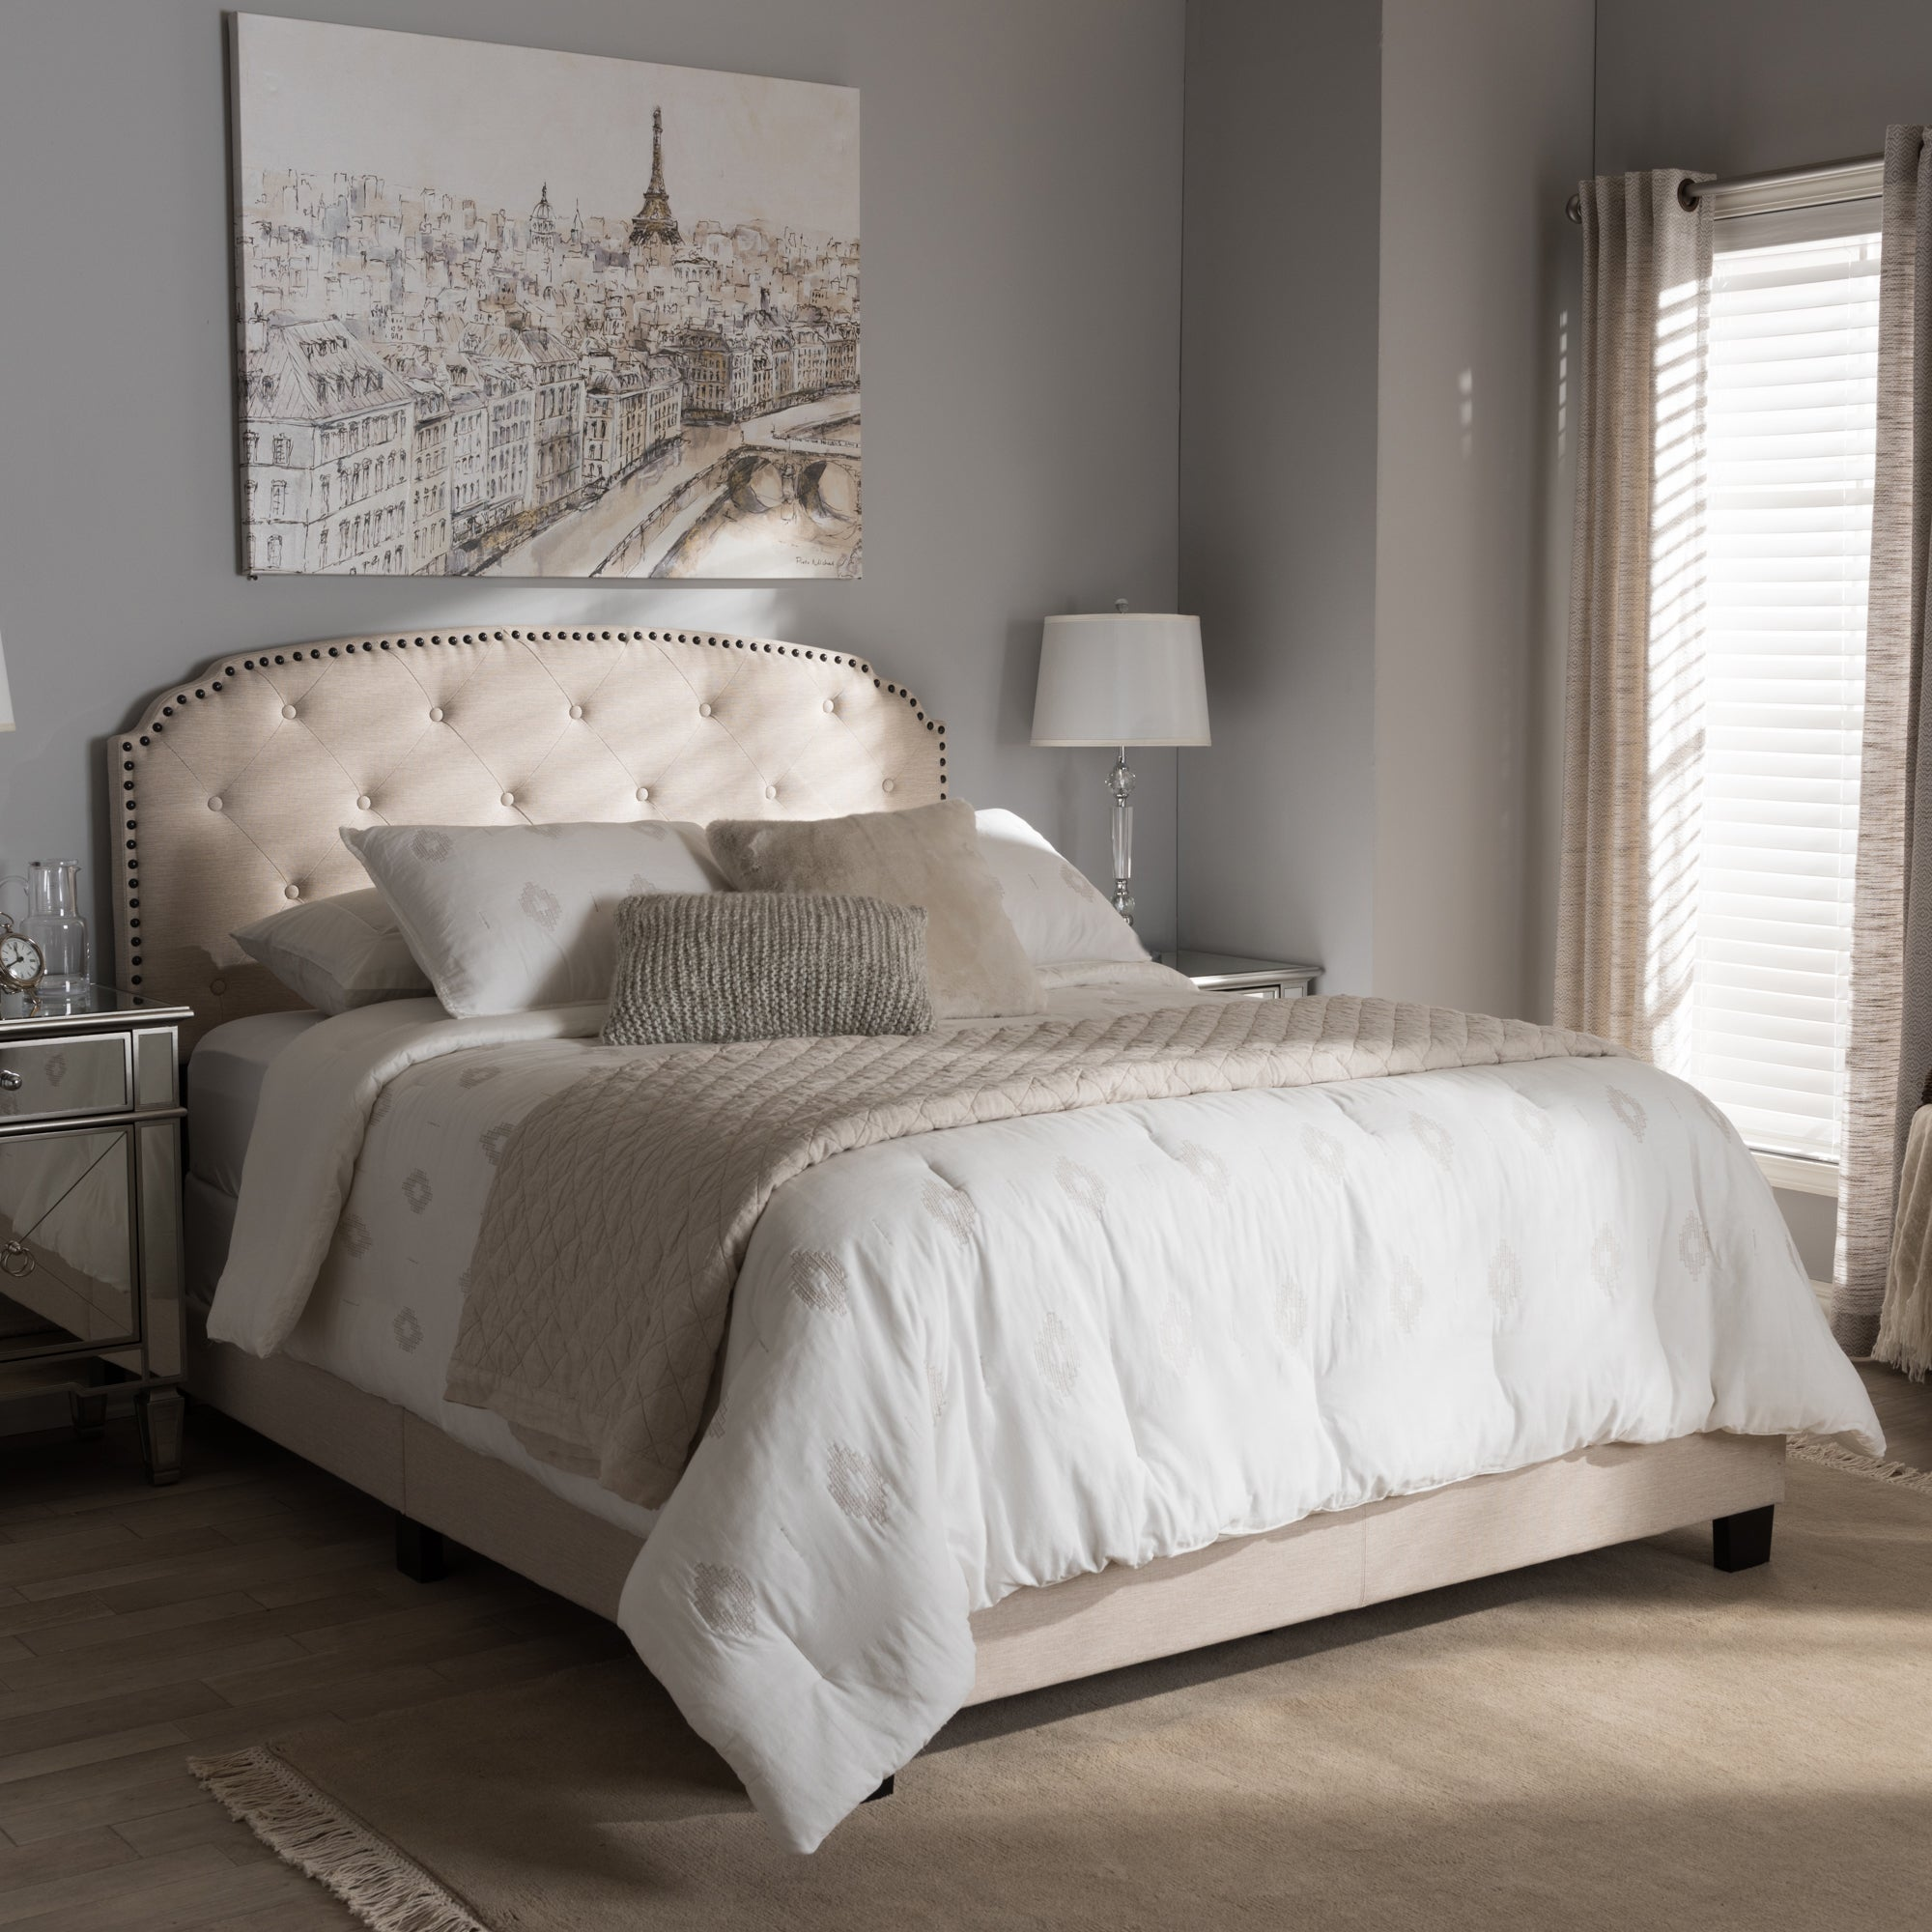 in bed beds co design ashley products king by fabric nongzi gray romeo upholstered